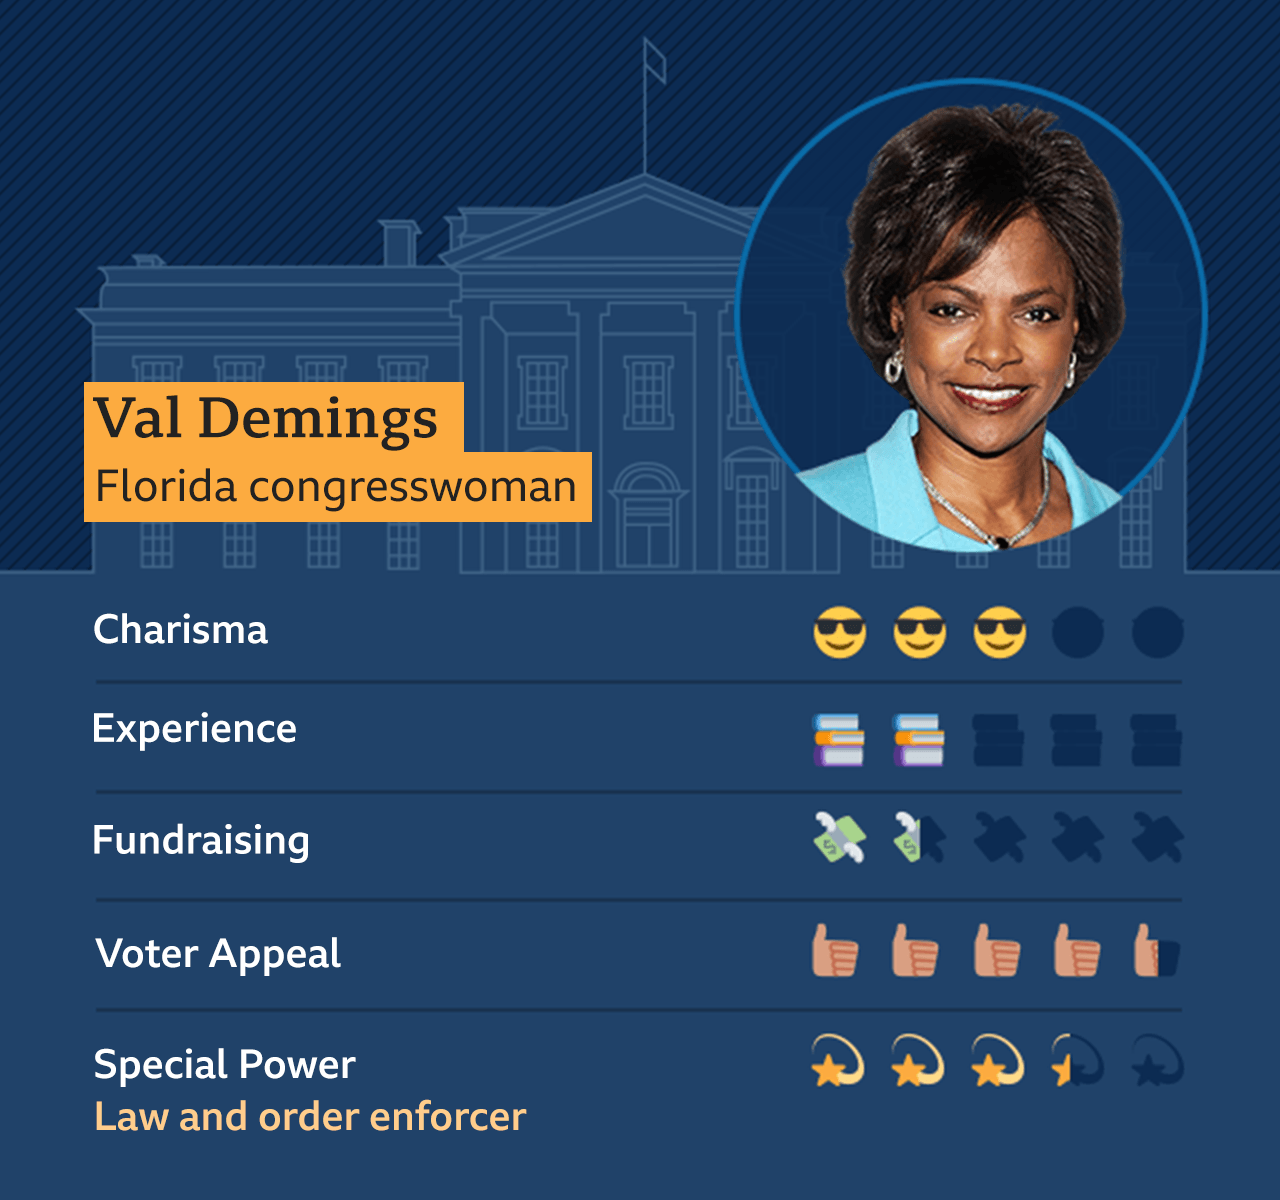 Graphic of Val Demings, Florida congresswoman: Charisma - 3, Experience - 2, Fundraising - 1.5, Voter appeal - 4.5, Special Power - Law and order enforcer - 3.5